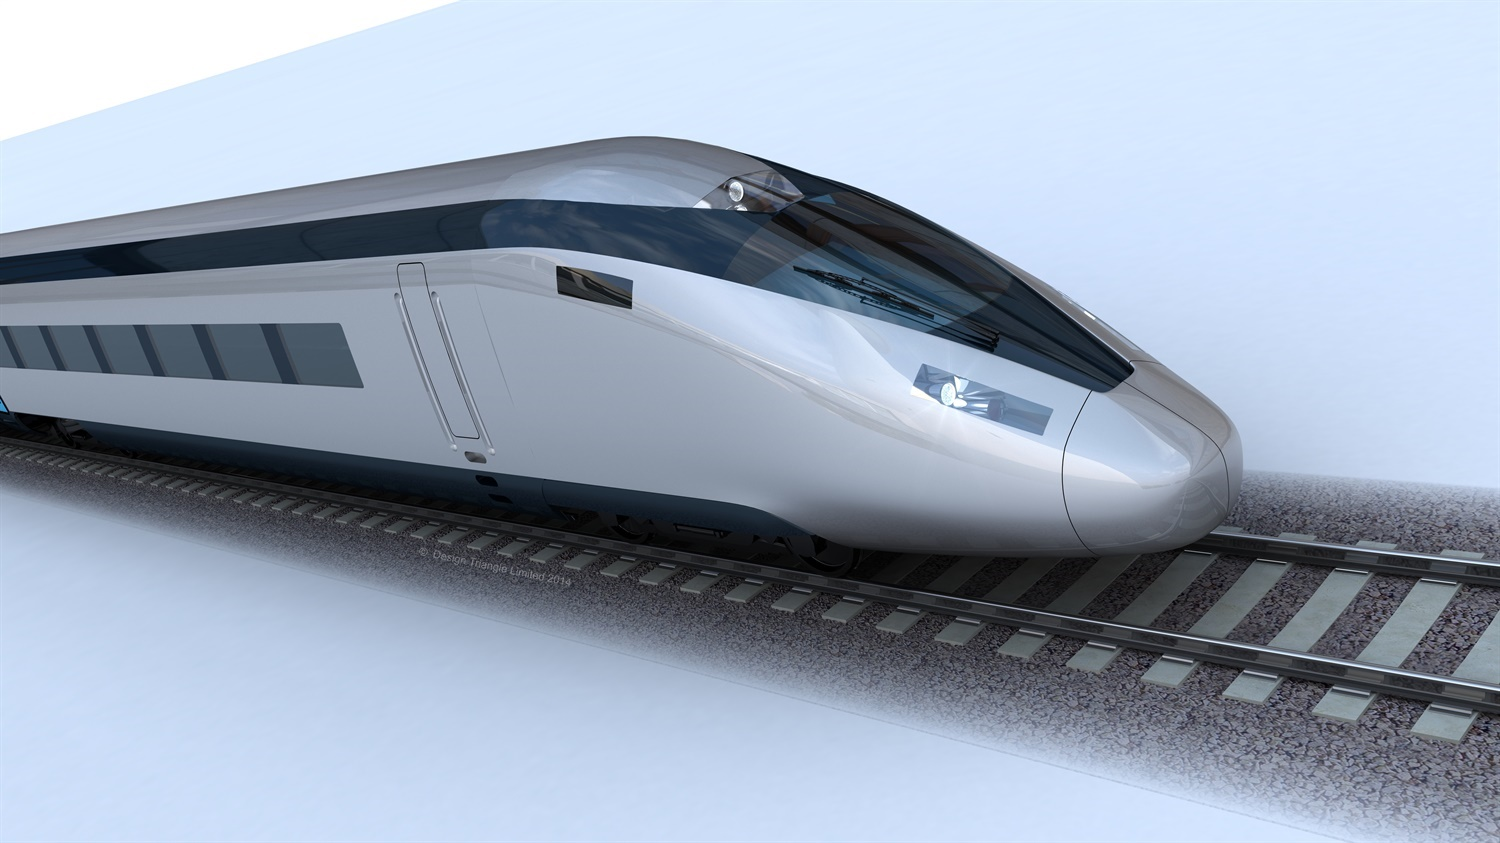 More than £10m spent already on HS2 legal fees